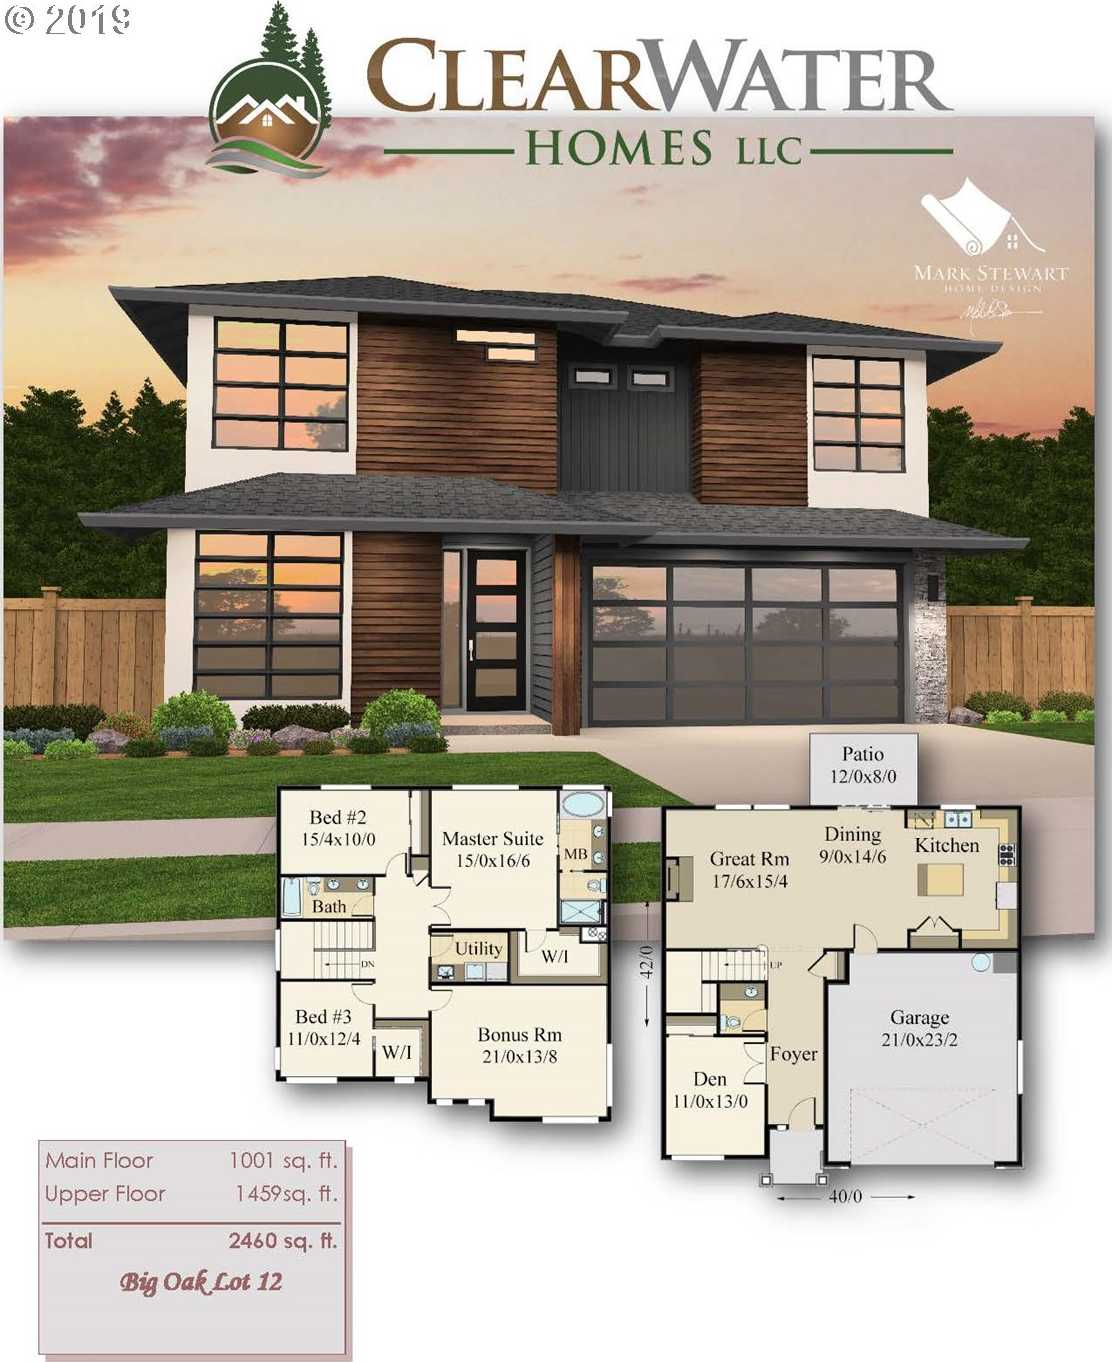 $490,000 - 4Br/3Ba -  for Sale in Big Oak At Brookside Lot 8, Gresham